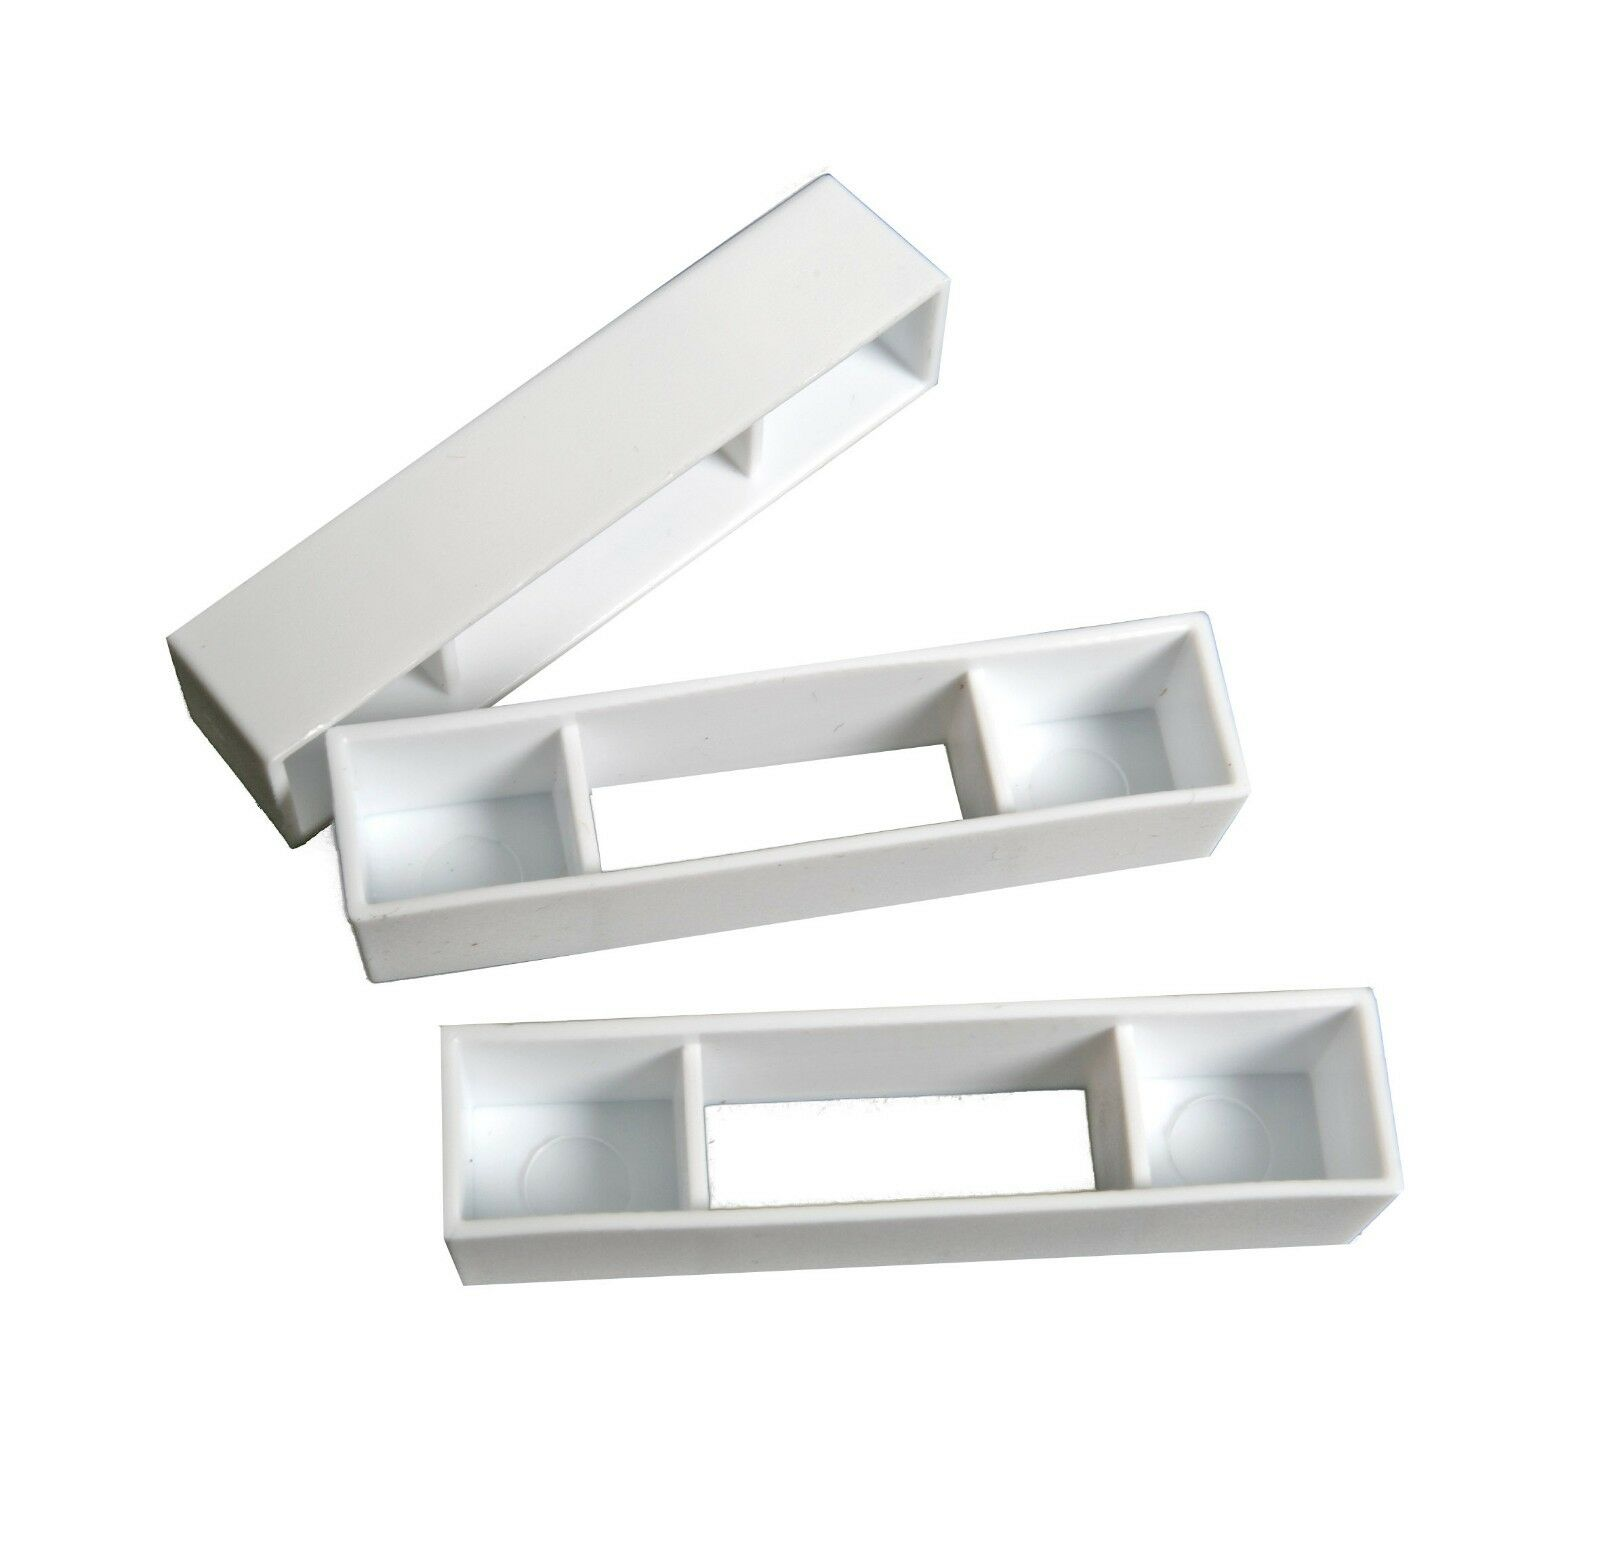 200 Wide beehive plastic frame ends / spacers